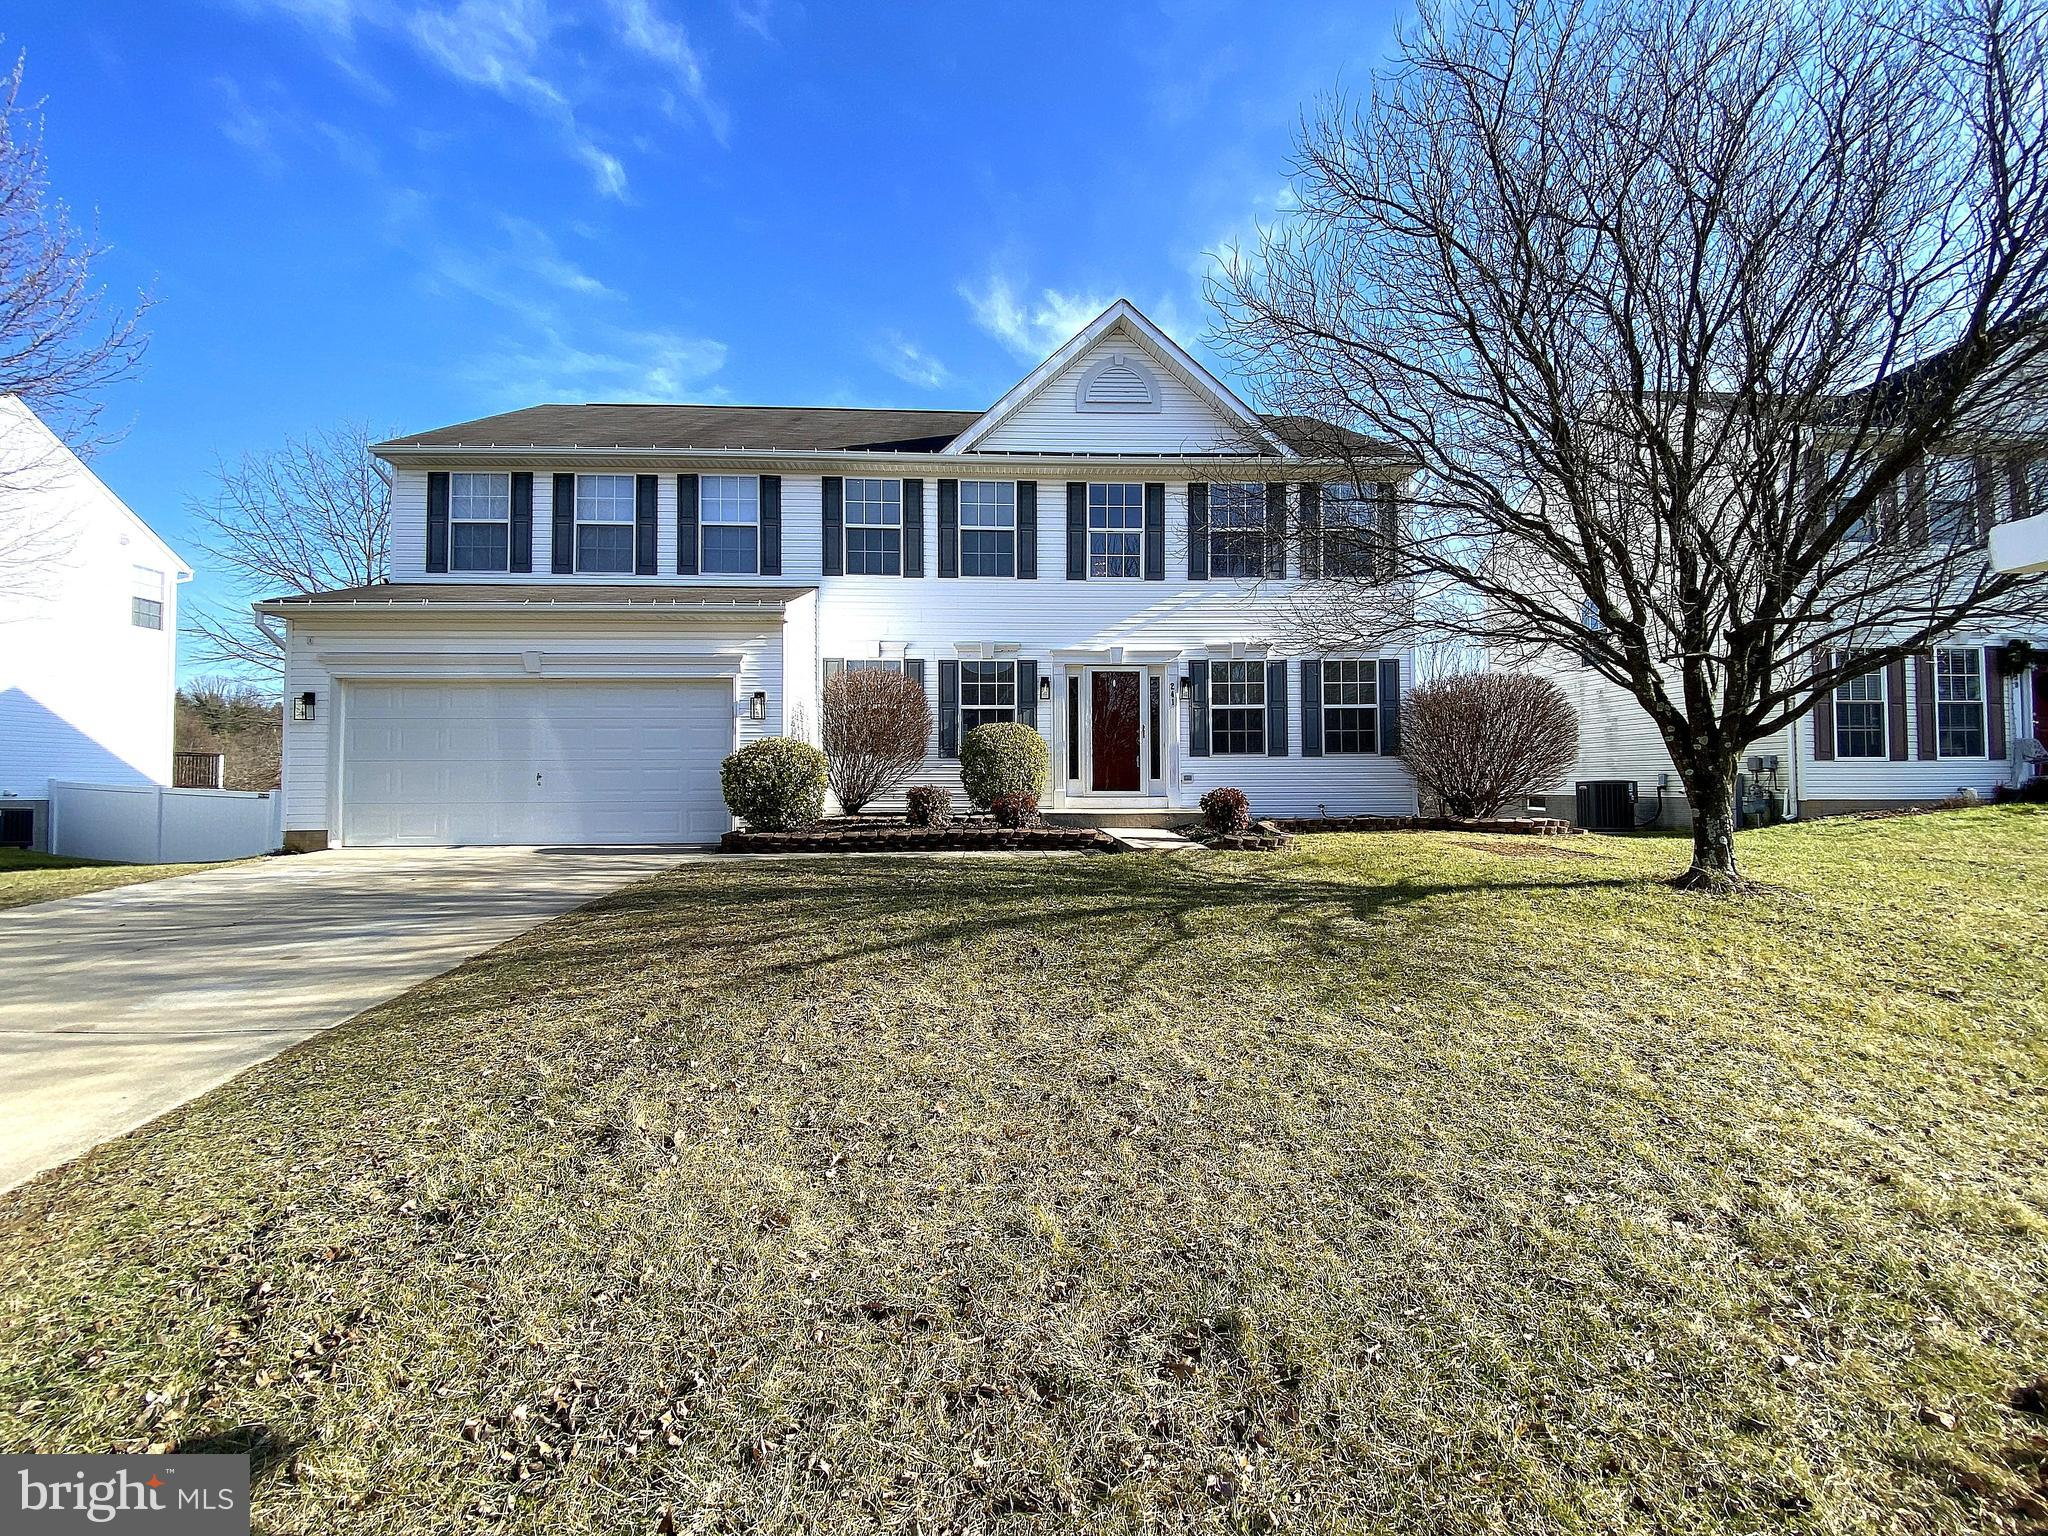 Spectacular 5 bedroom, 2 Full Bath/2 Half Bath Colonial located in Stoneridge Overlook with the pote